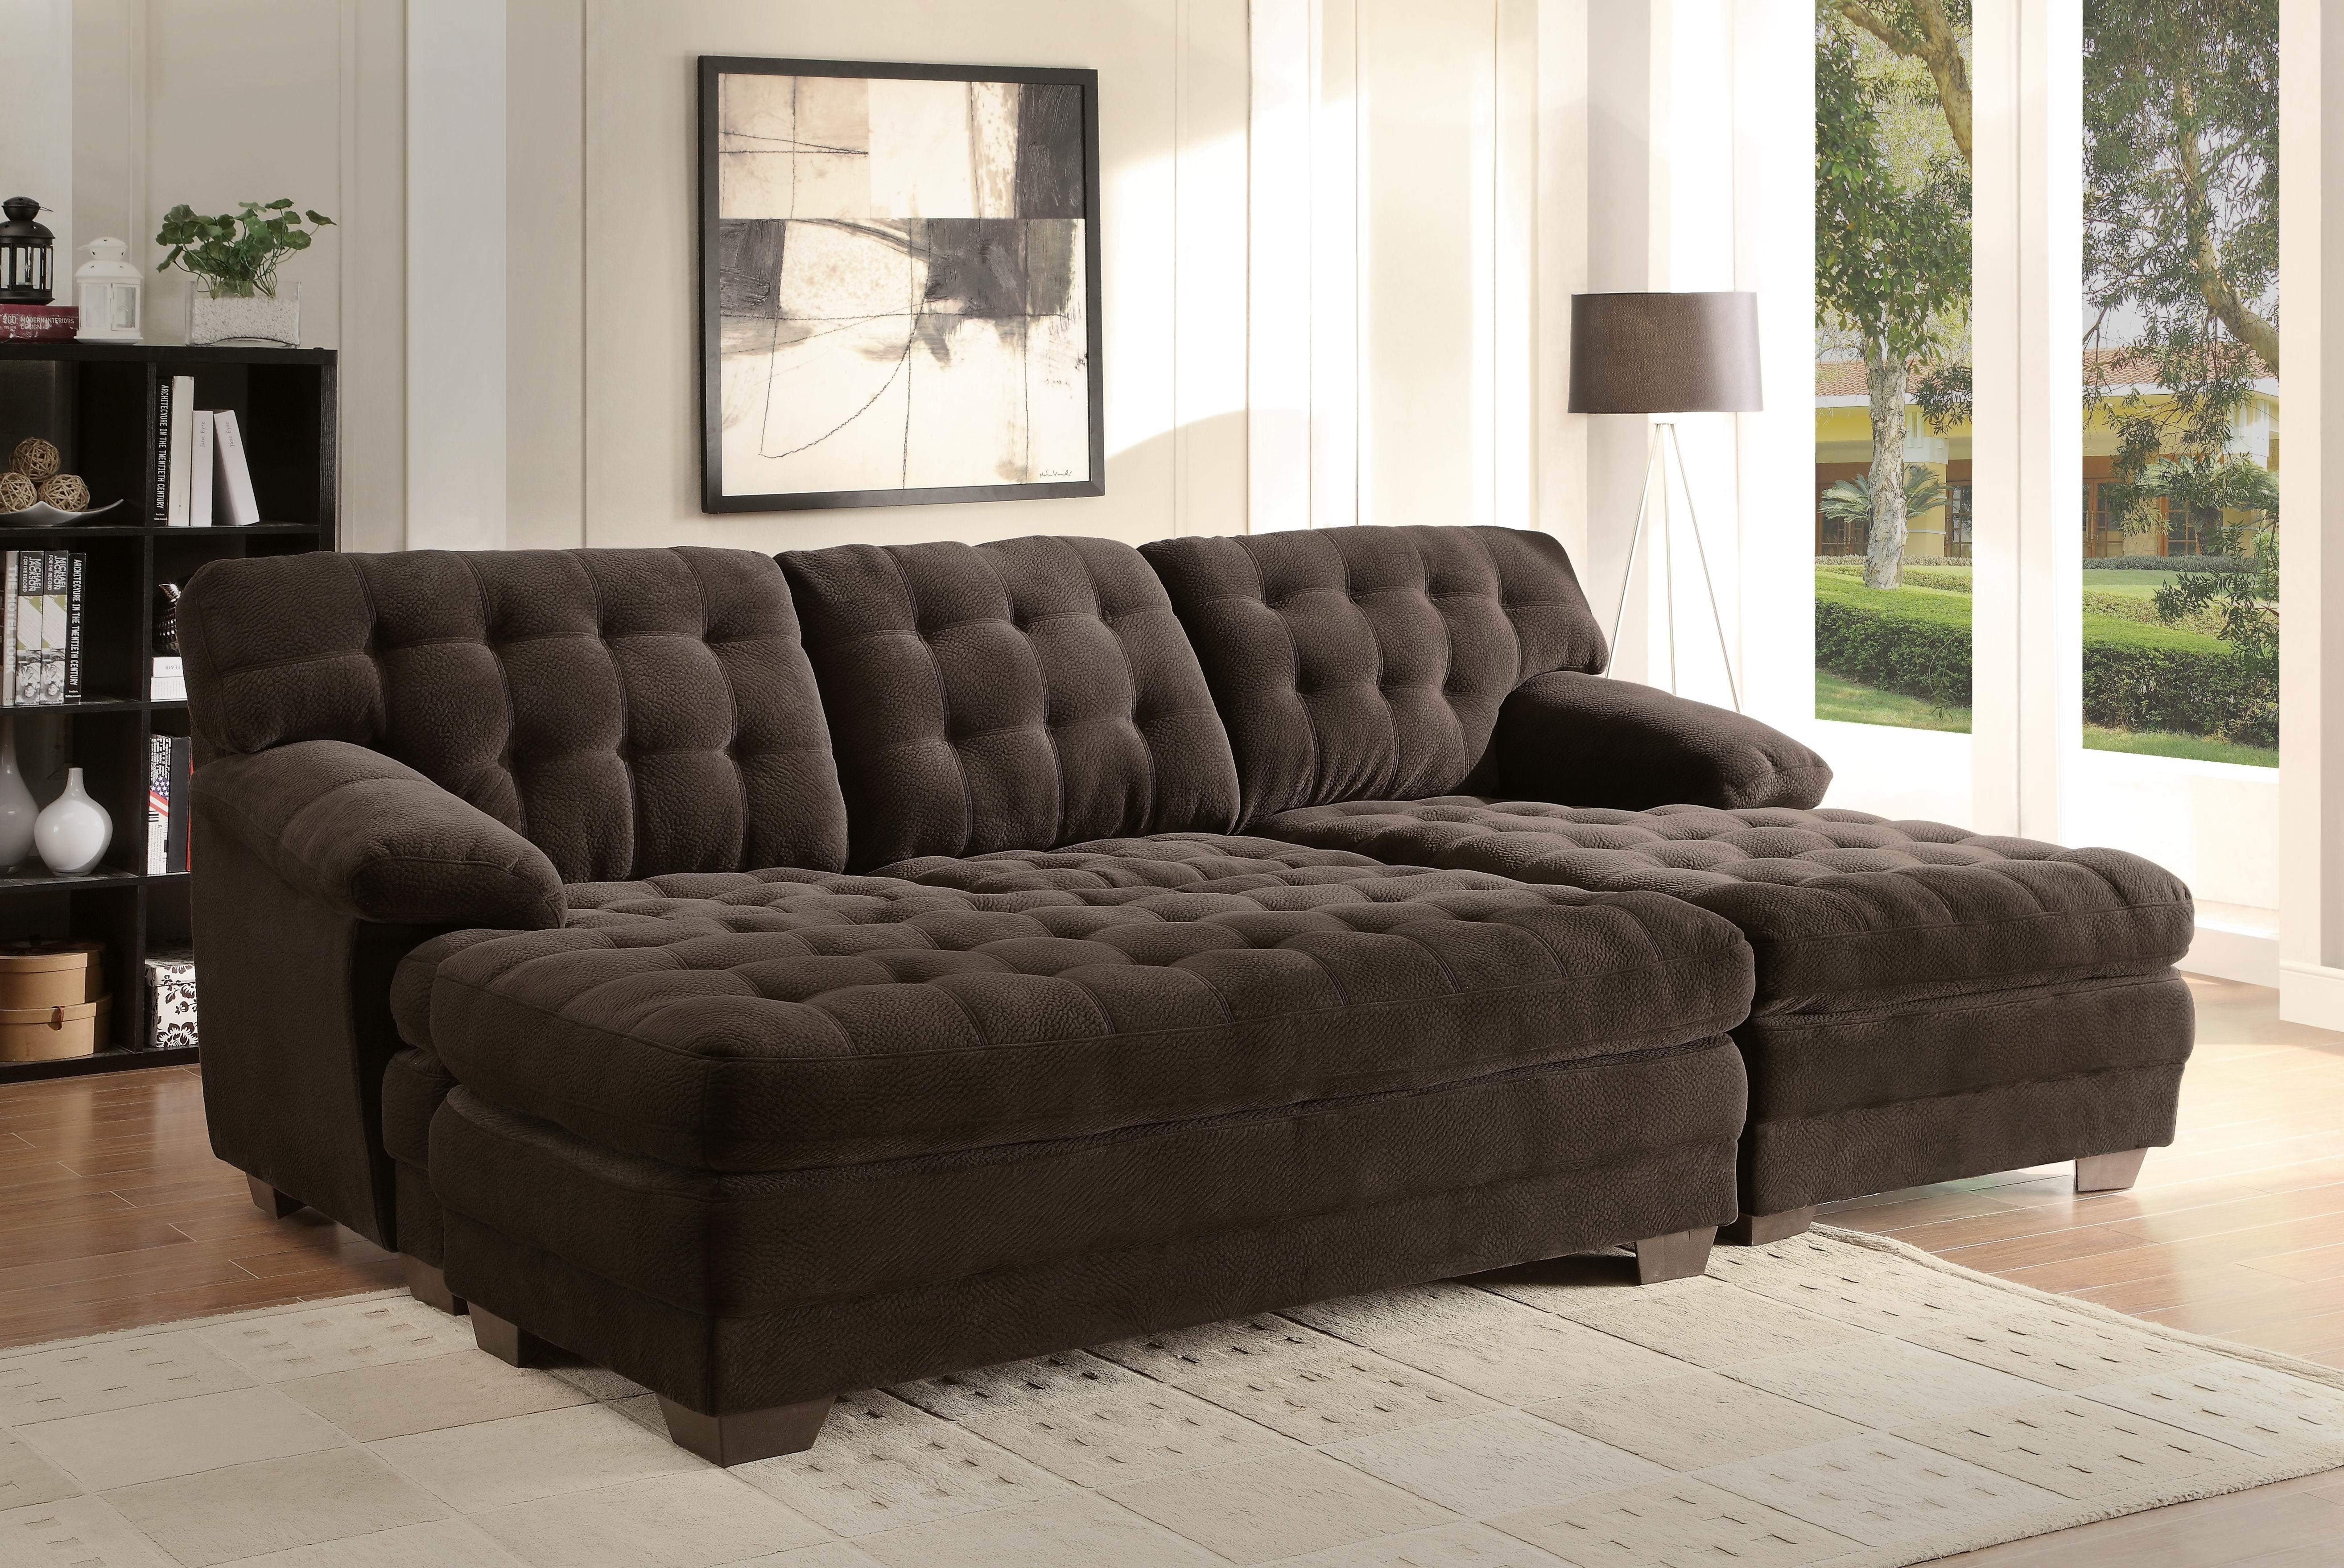 New Sectional Sofa With Large Ottoman 97 For Your Largest Sectional Regarding Couches With Large Ottoman (View 4 of 10)